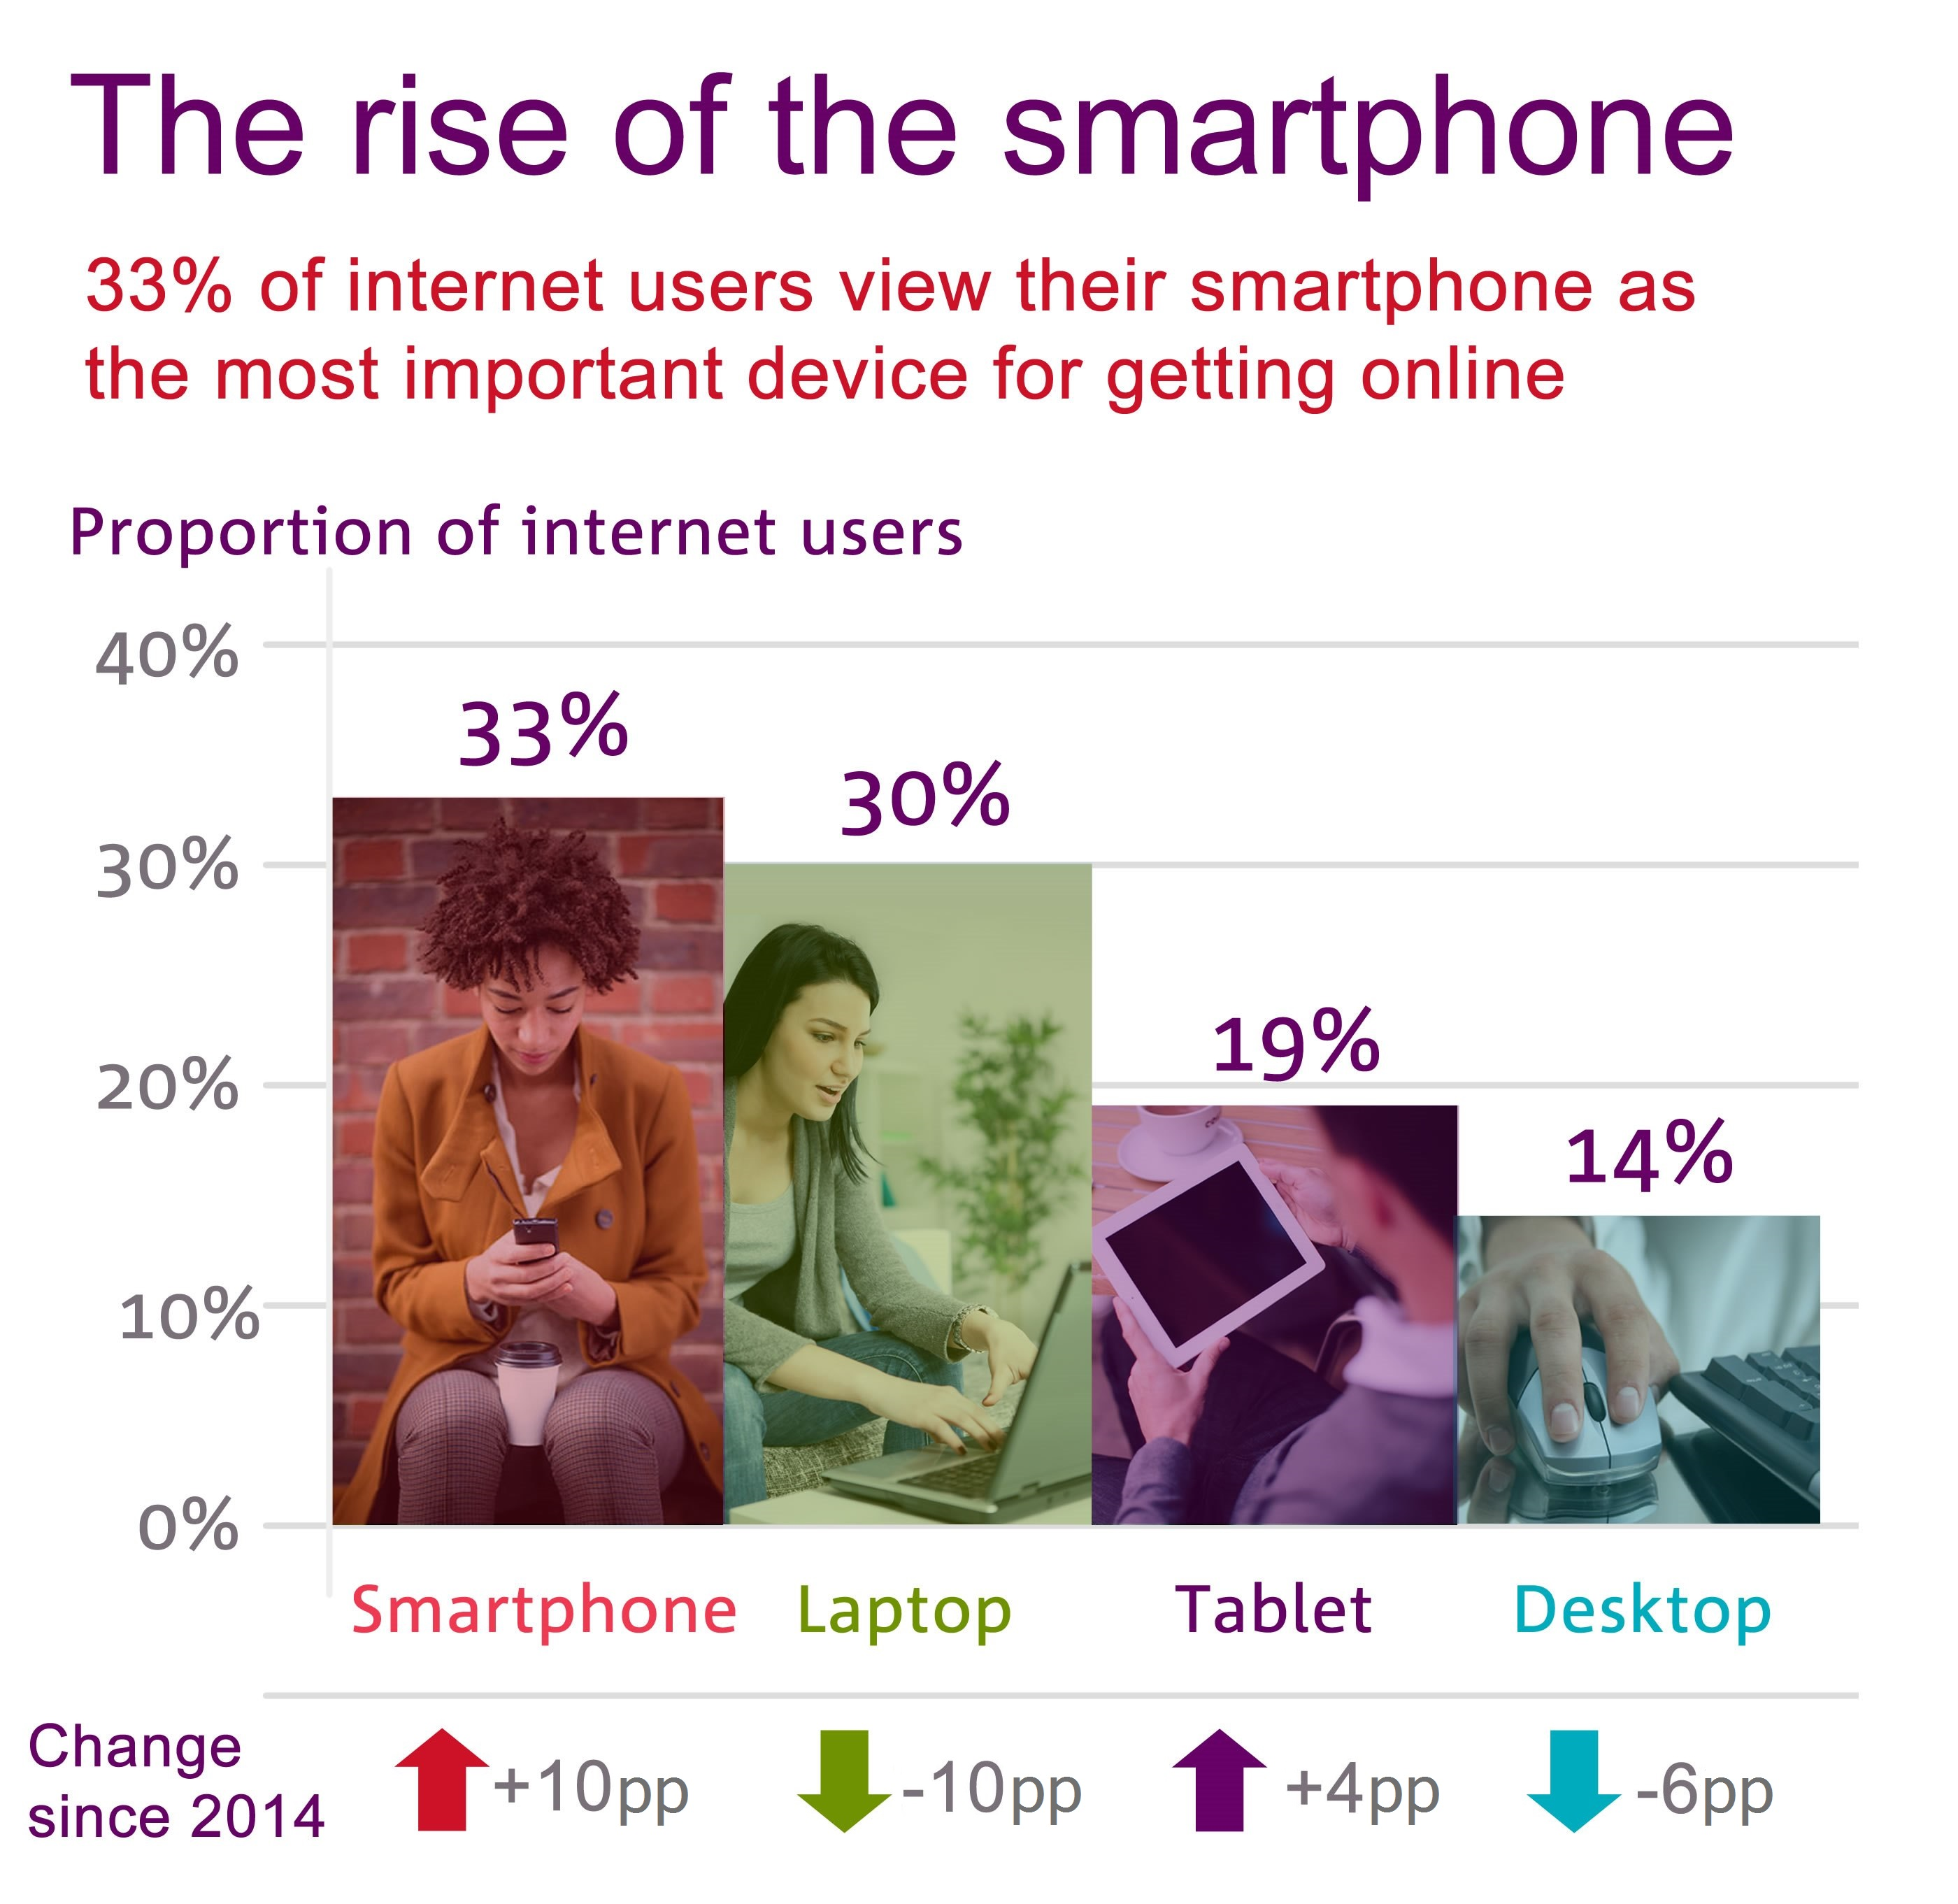 33% of Internet users view their smartphone as the most important device for getting online